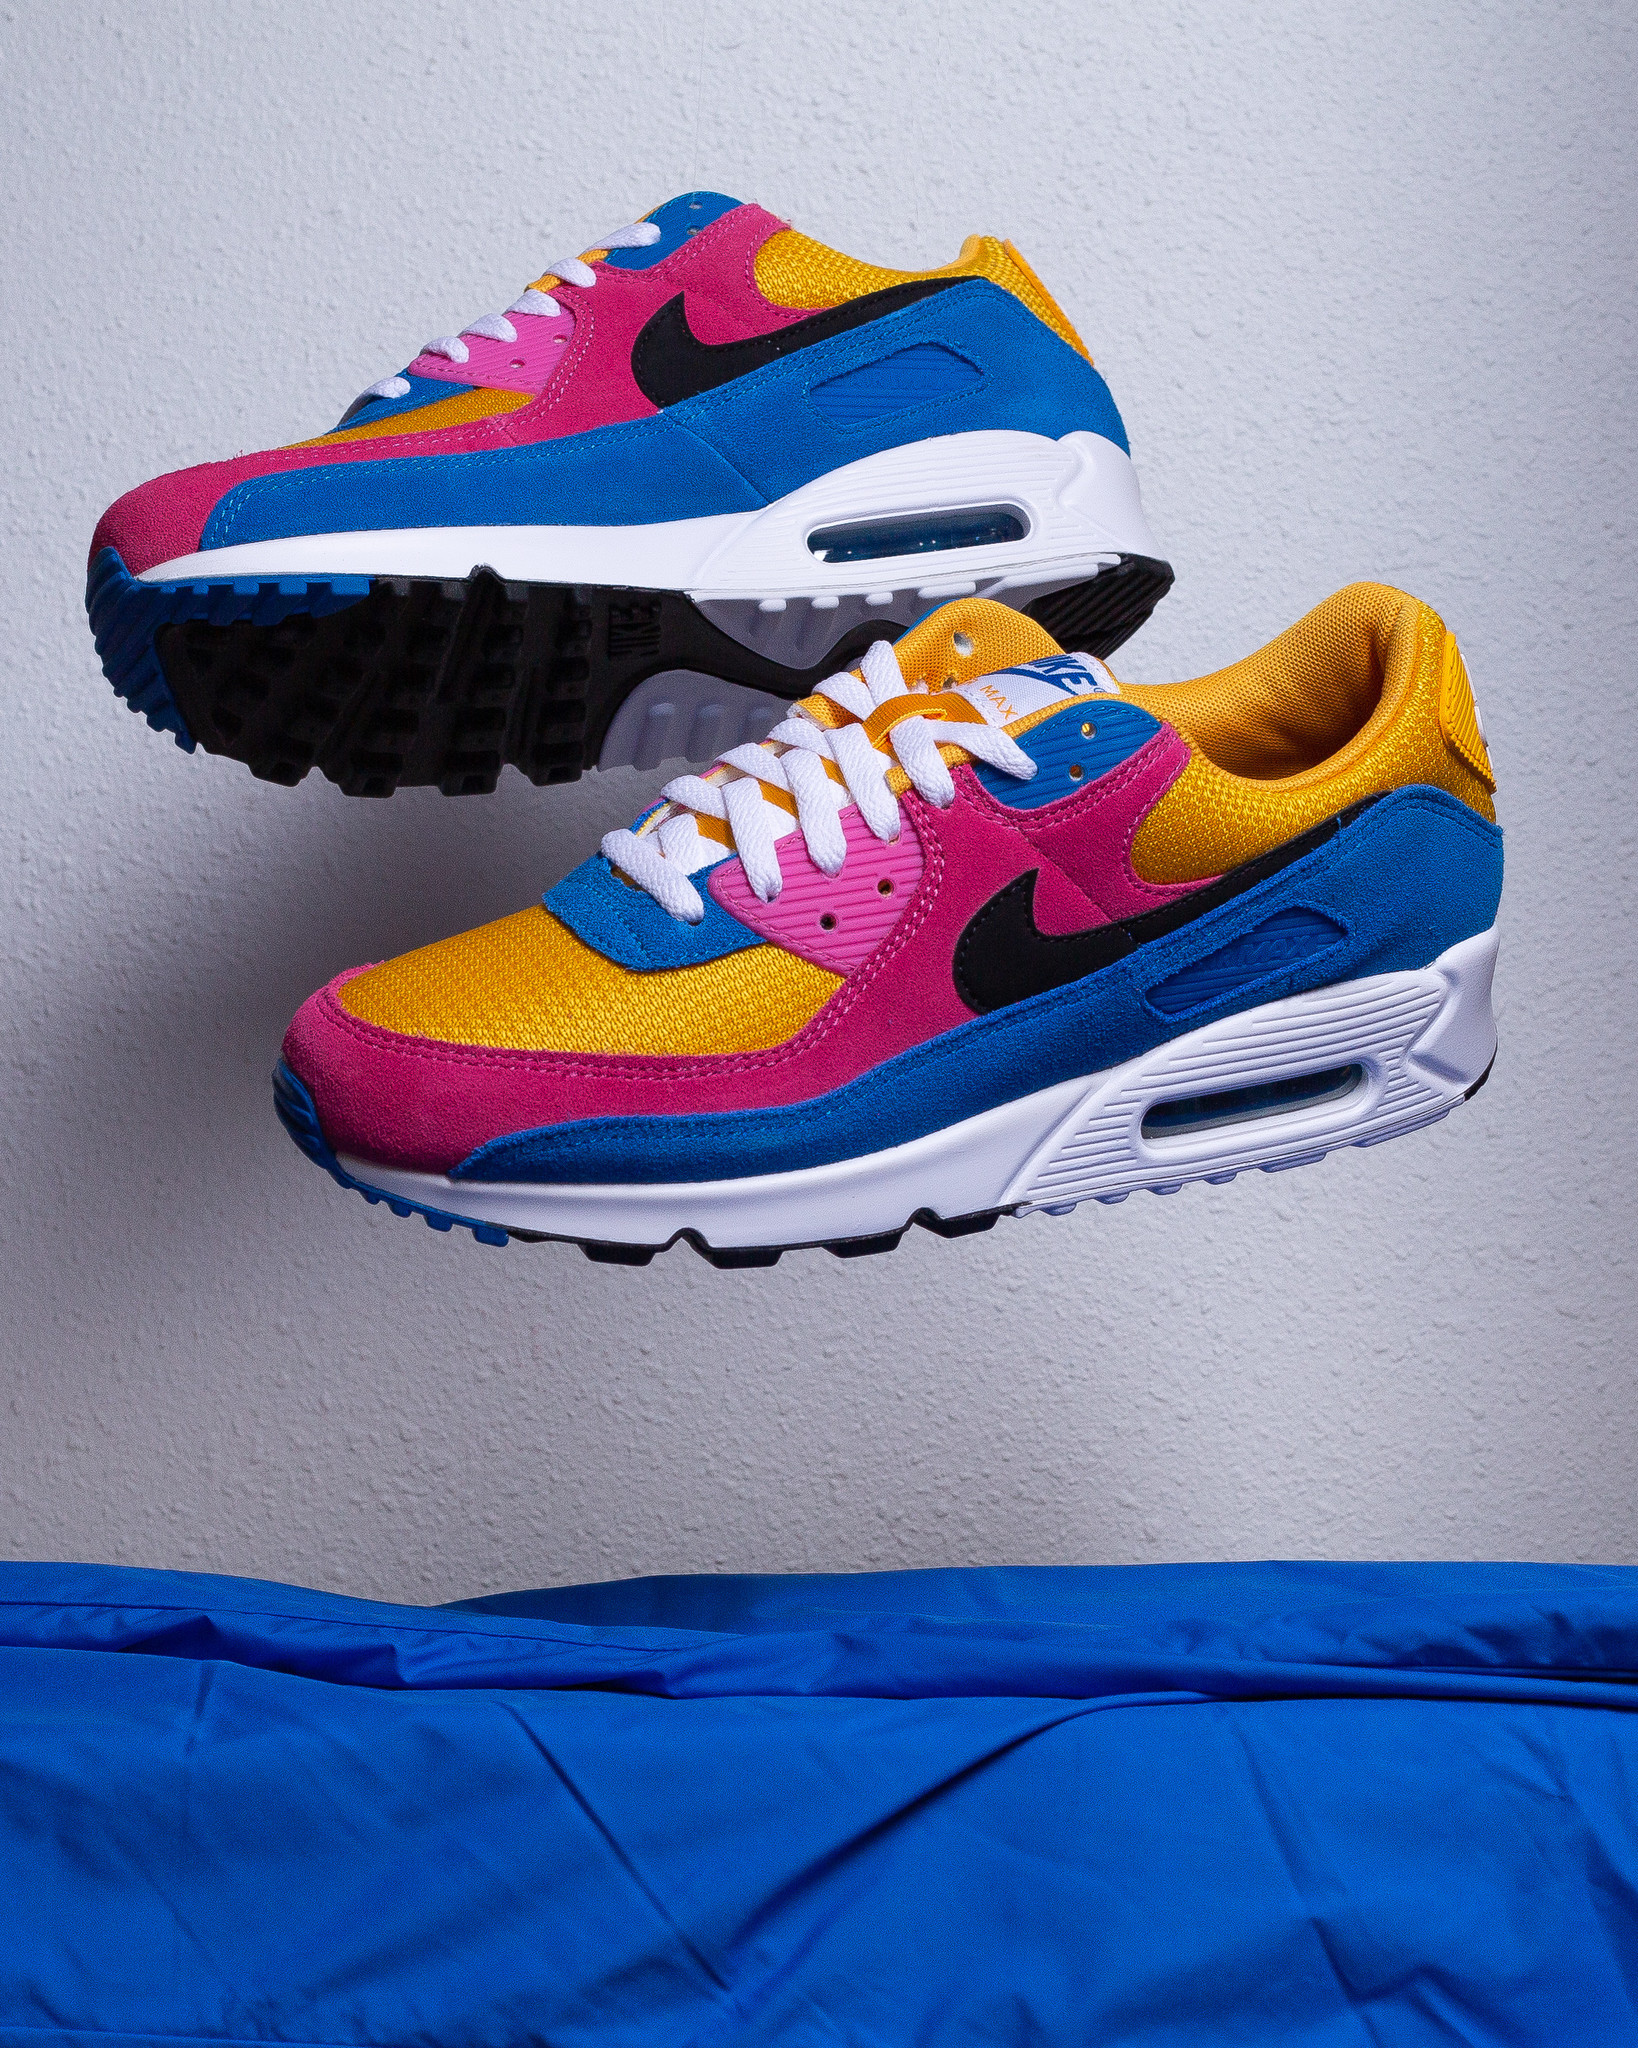 Nike Air Max 90 University Gold/Battle Blue